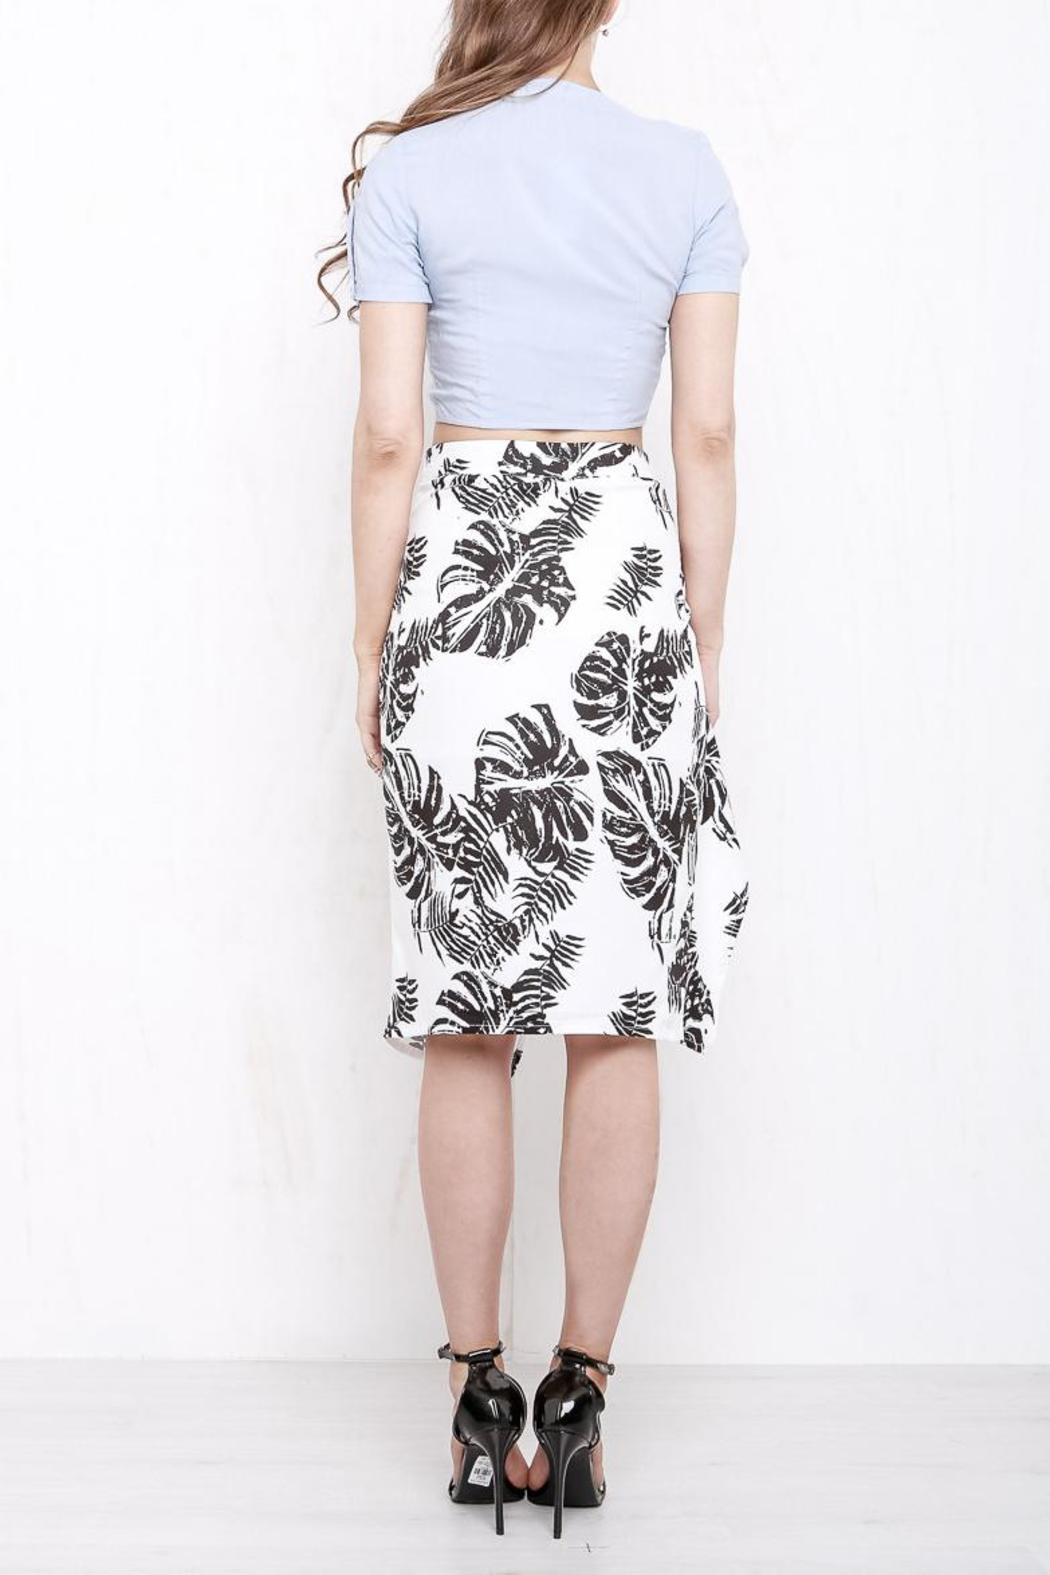 Morrisday The Label Paradise Skirt - Side Cropped Image